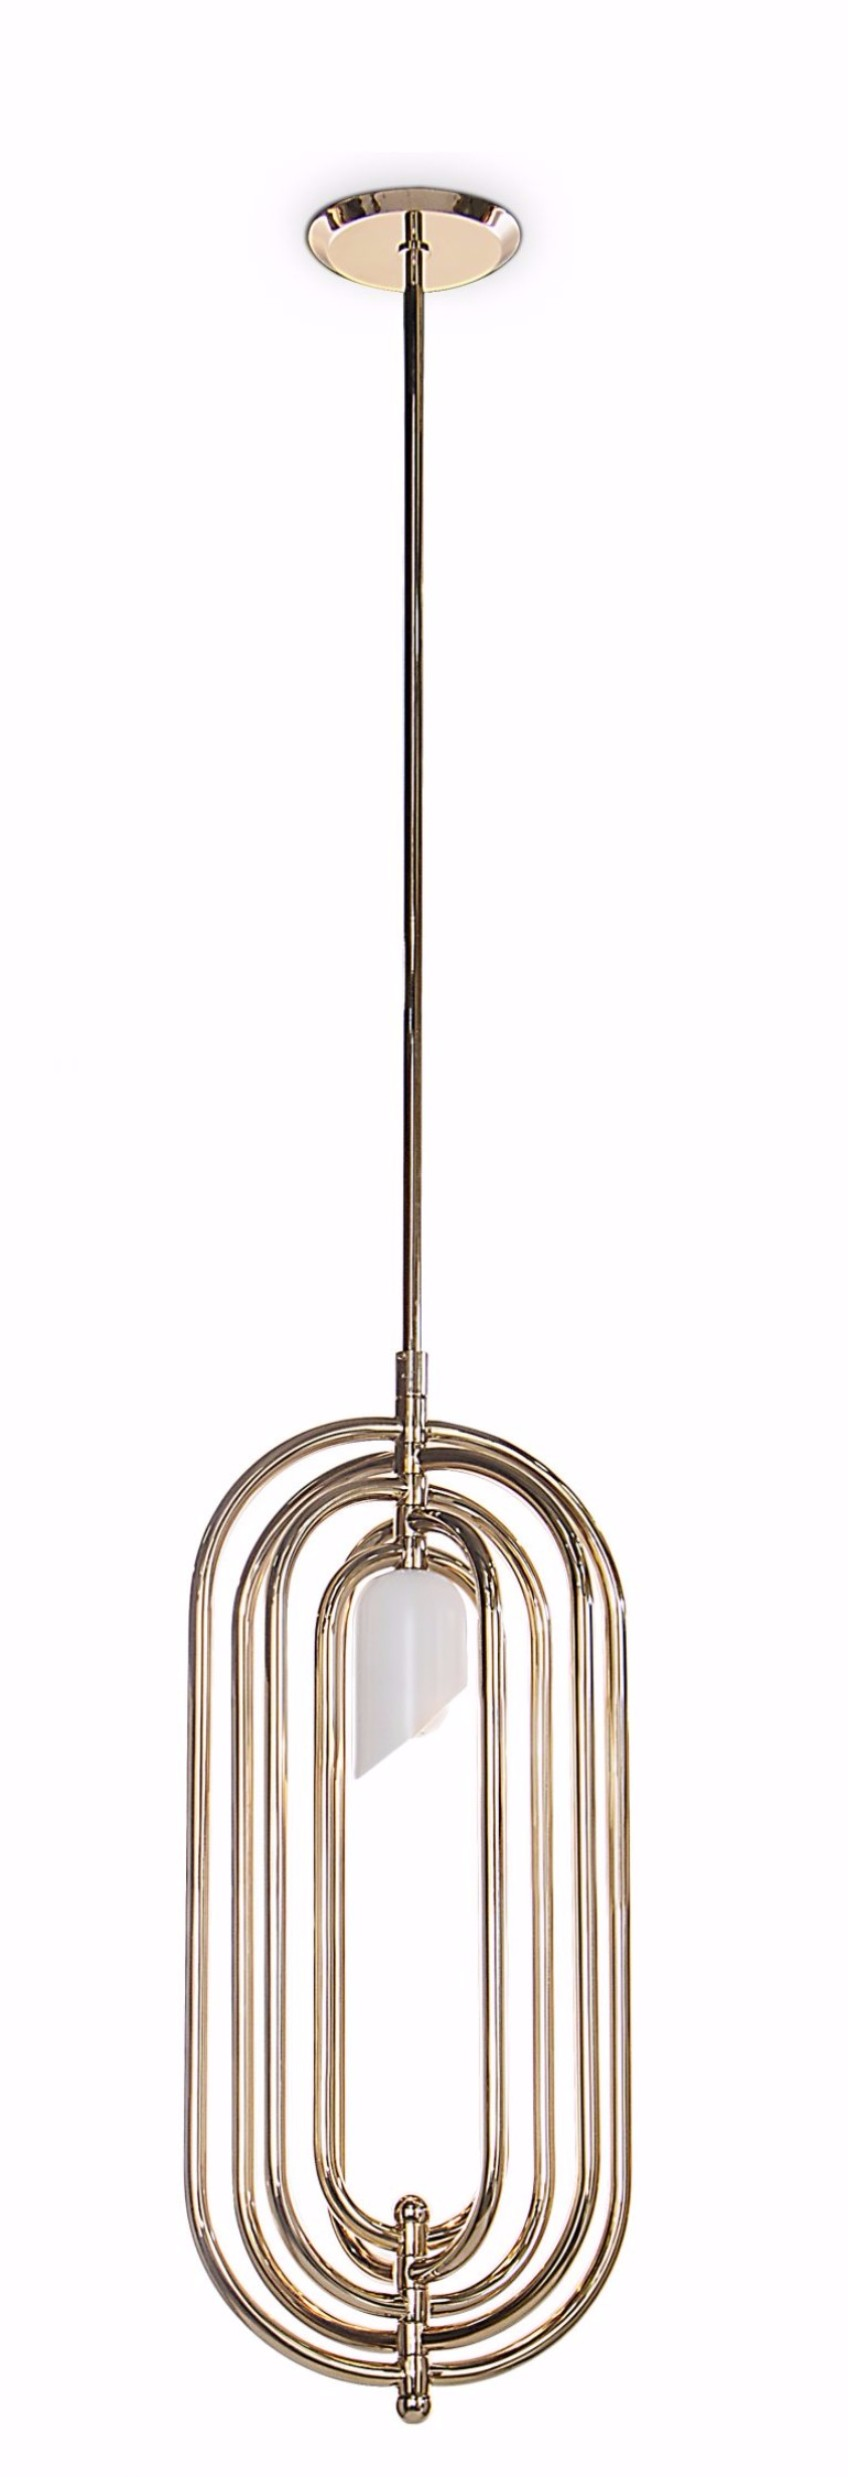 mid century modern lighting. A Scandinavian Interior Design With Mid-Century Modern Lighting Mid-century Mid Century I